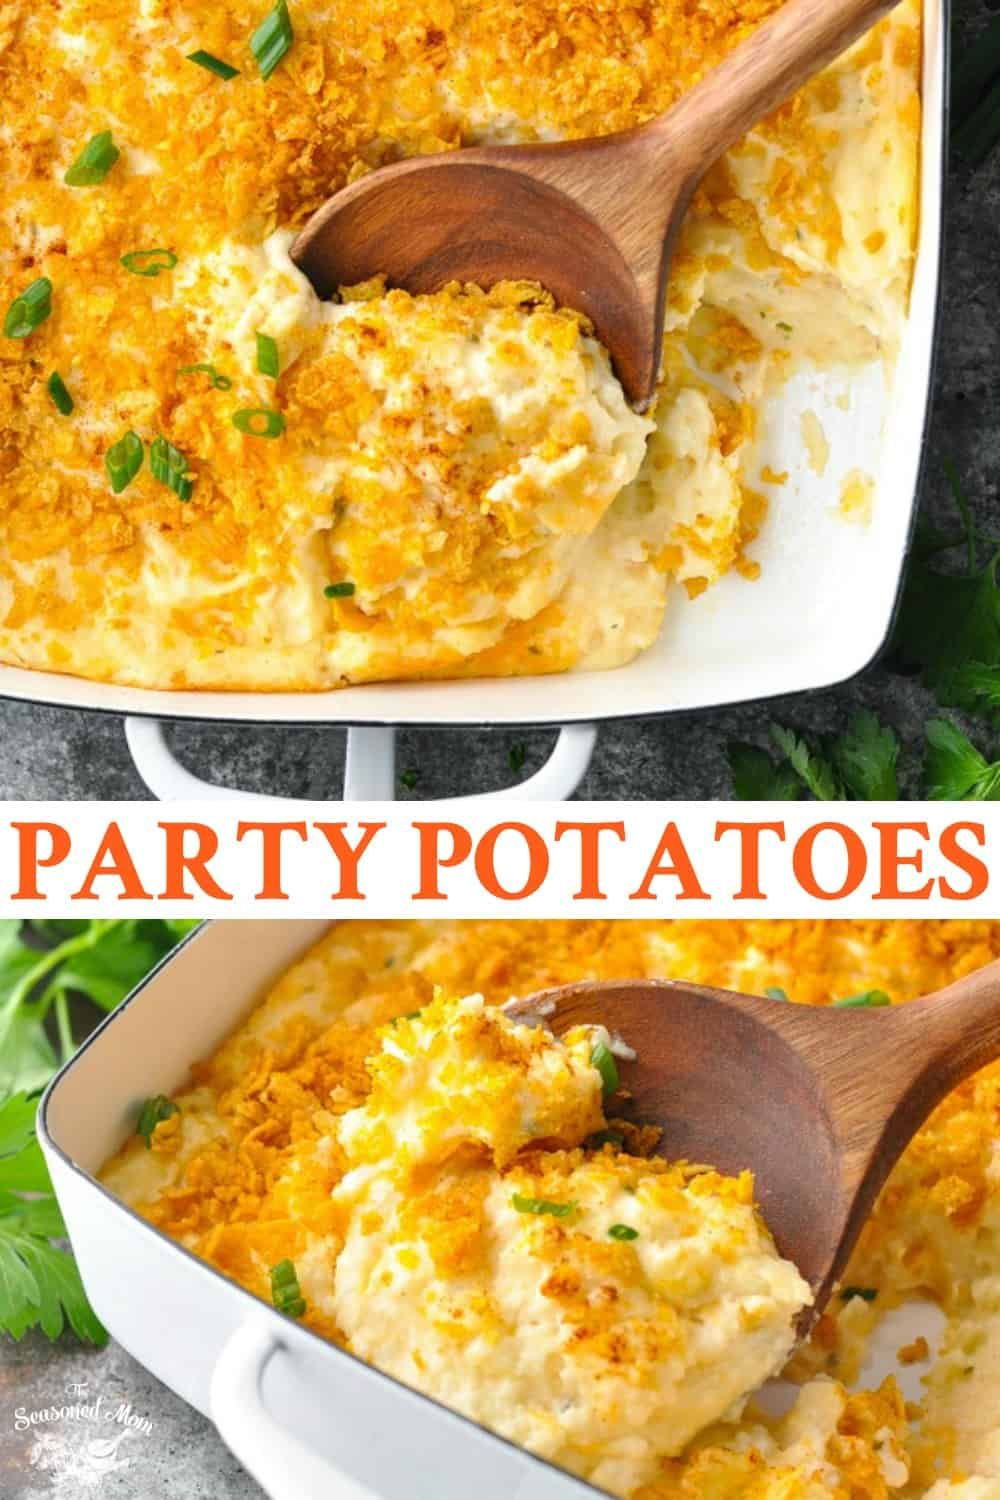 Party Potatoes Recipe In 2020 Potato Recipes Side Dishes Party Potatoes Potato Side Dishes